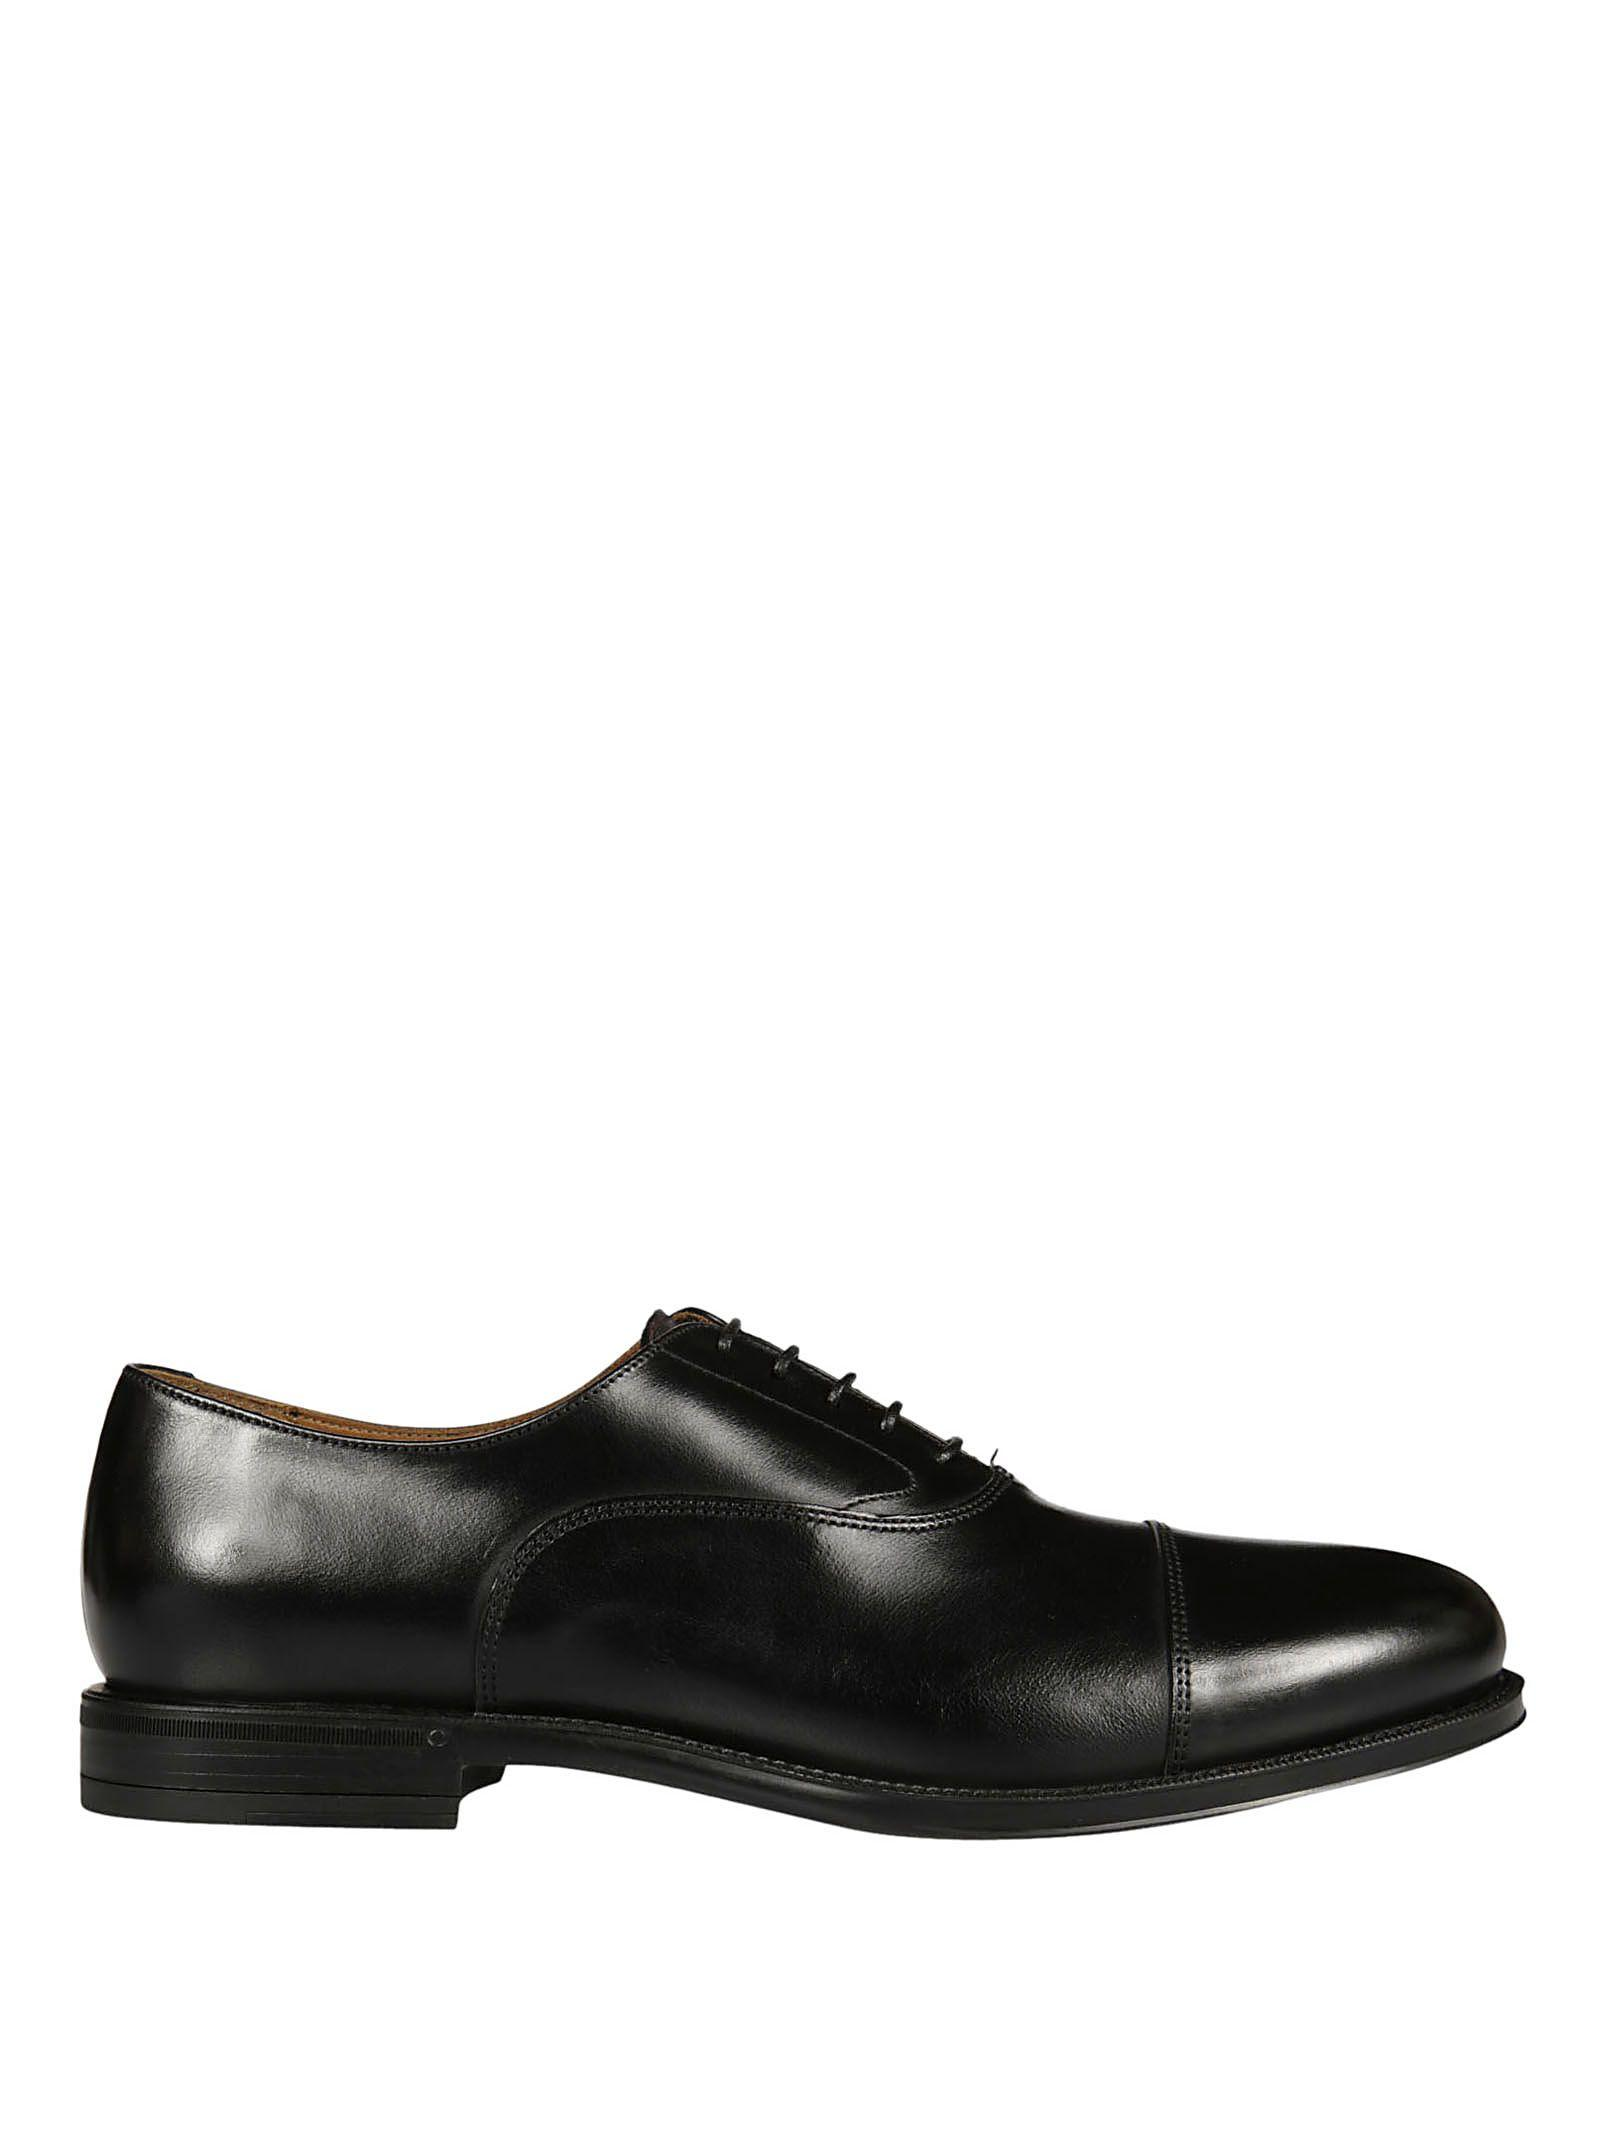 W.gibbs Oxford Shoes In Black